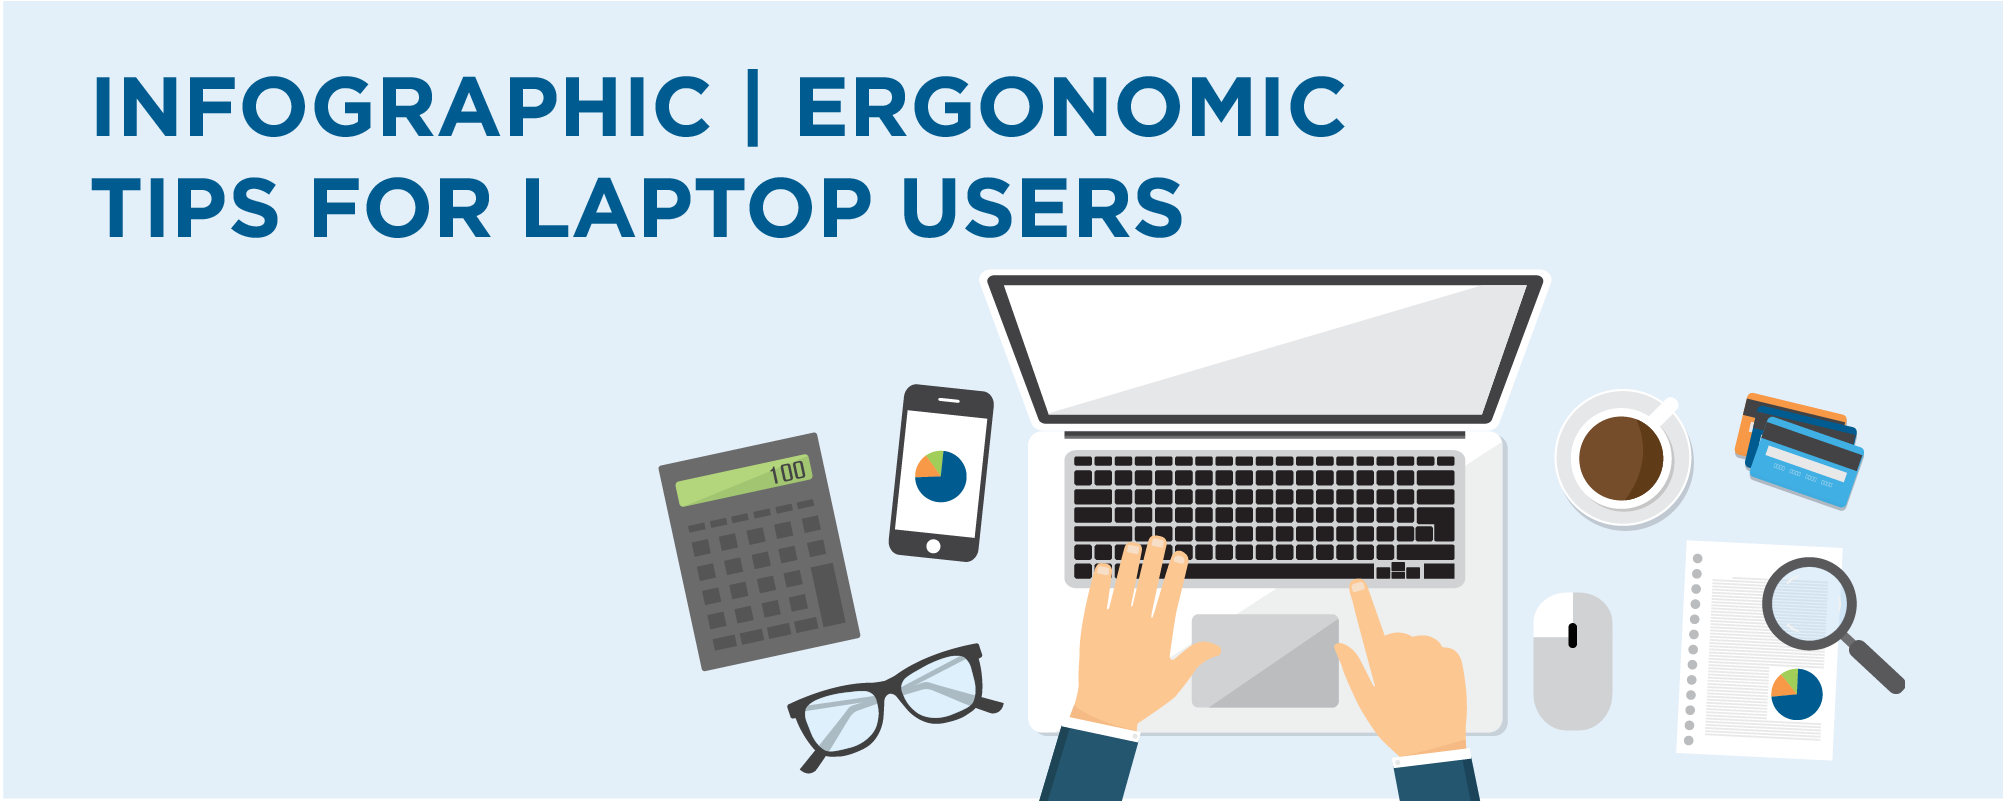 ergonomic-tips-for-laptop-users